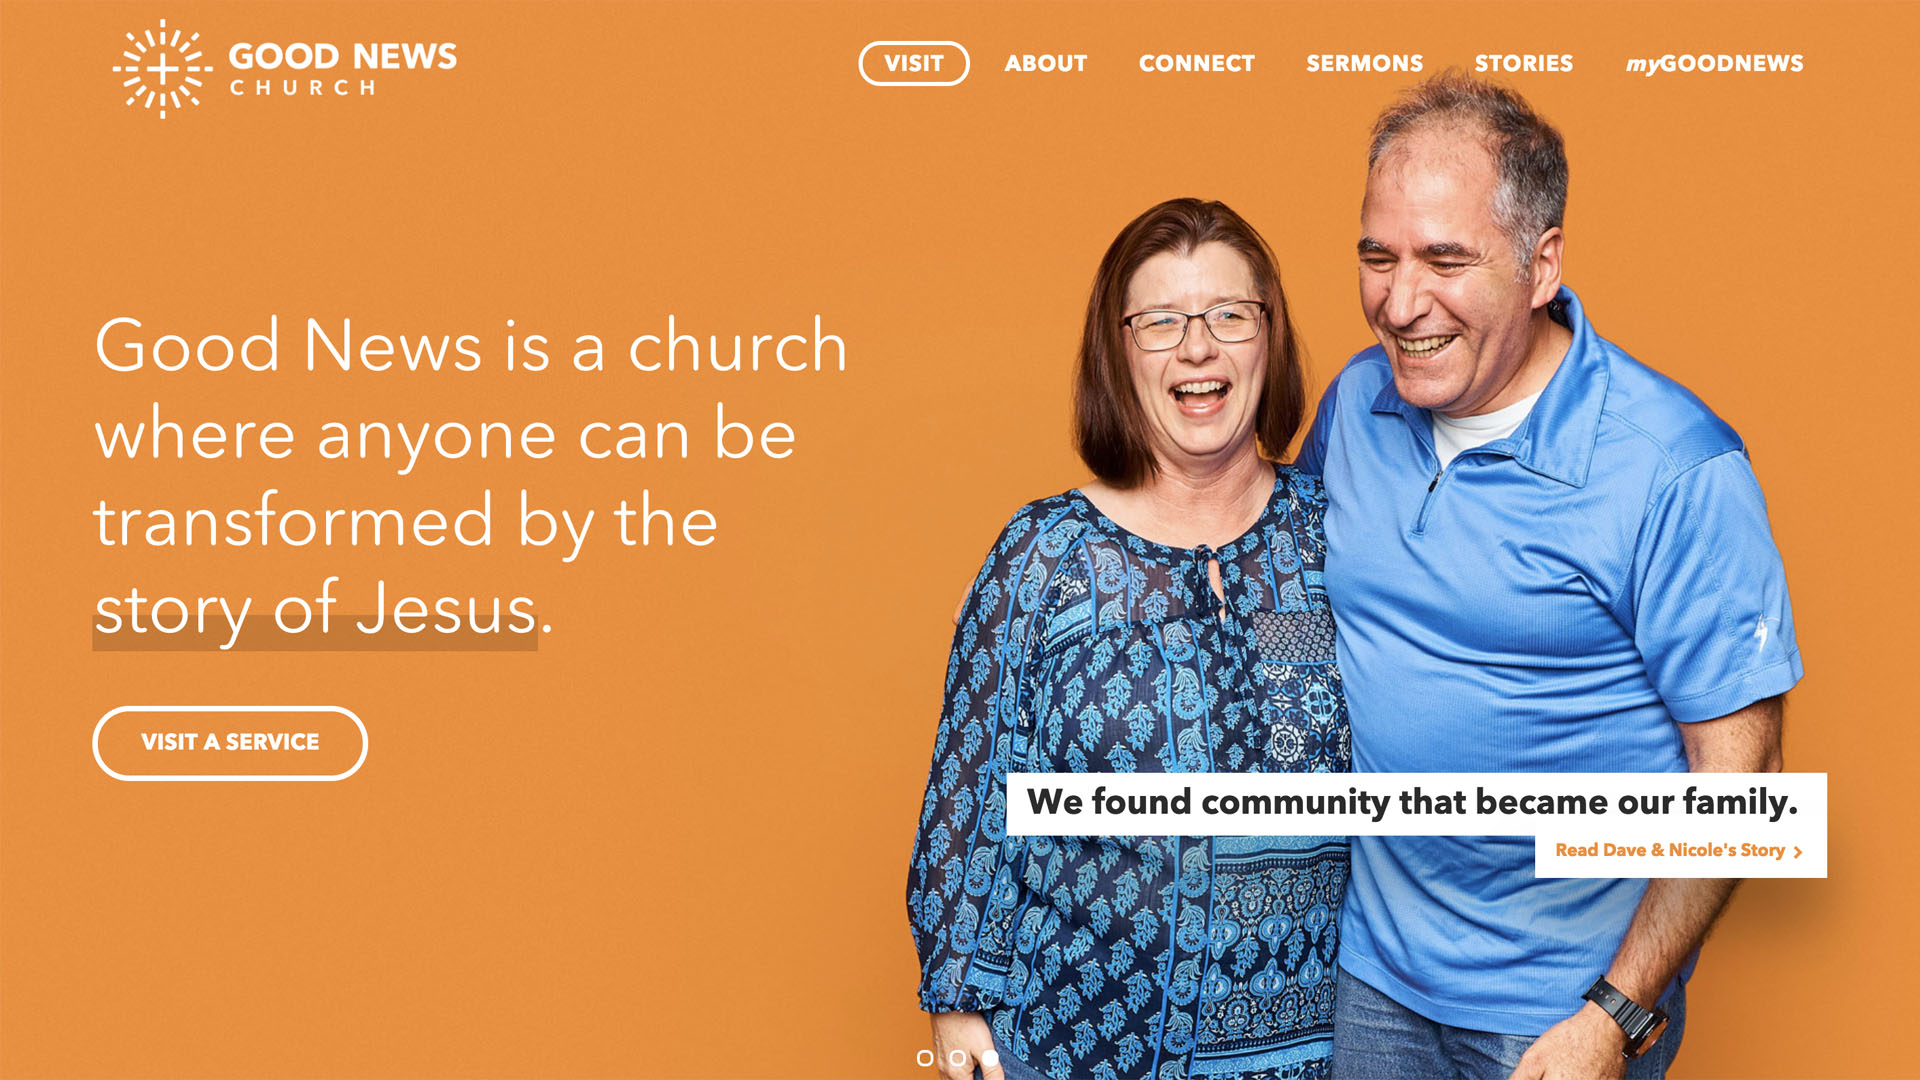 Good News Church - http://goodnews.church/